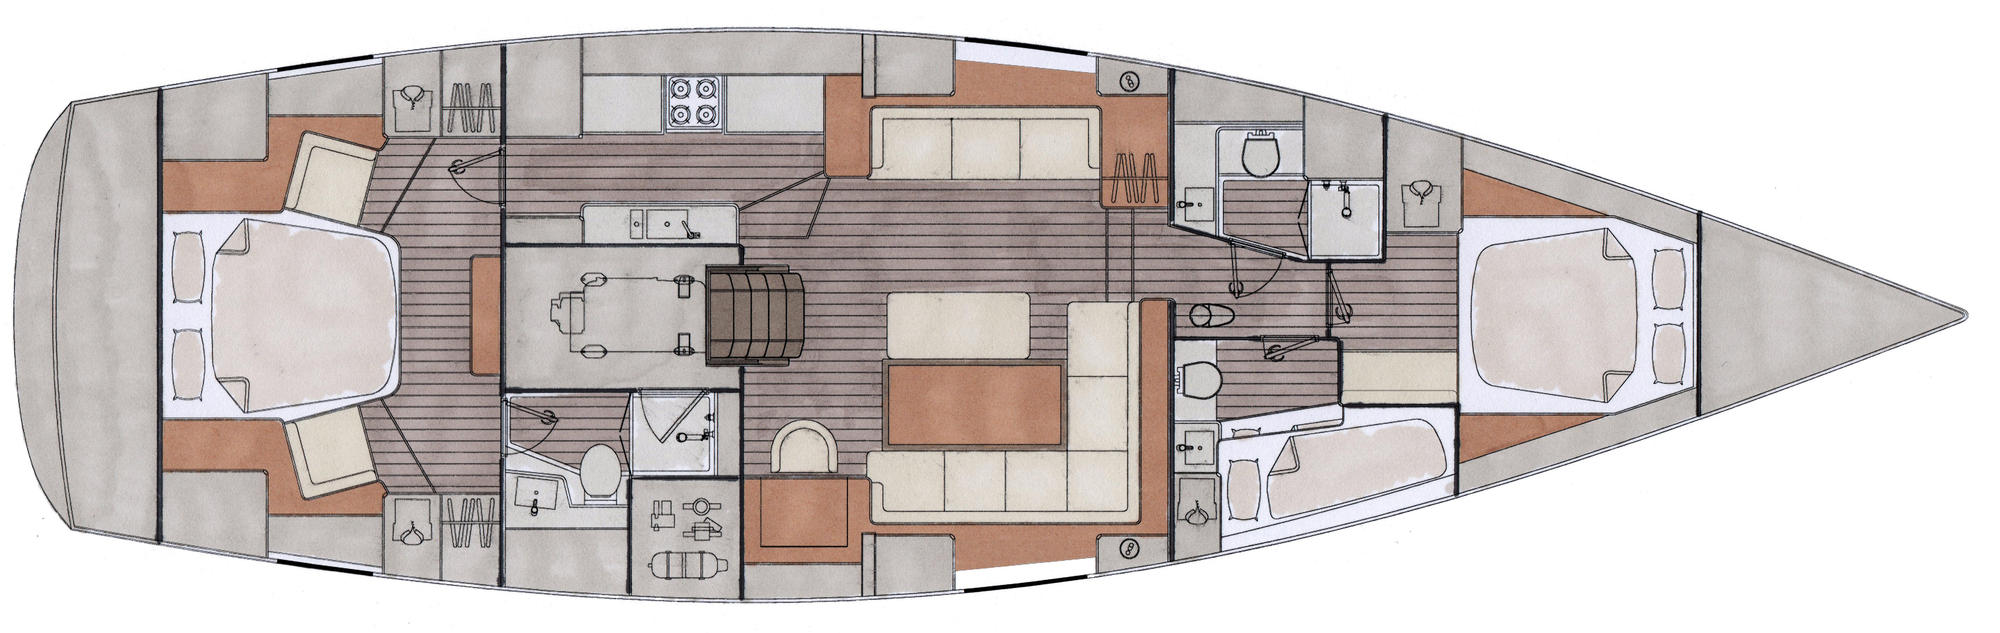 Conyplex Contest 57 CS - contest_57cs_interior_layout_a.jpg